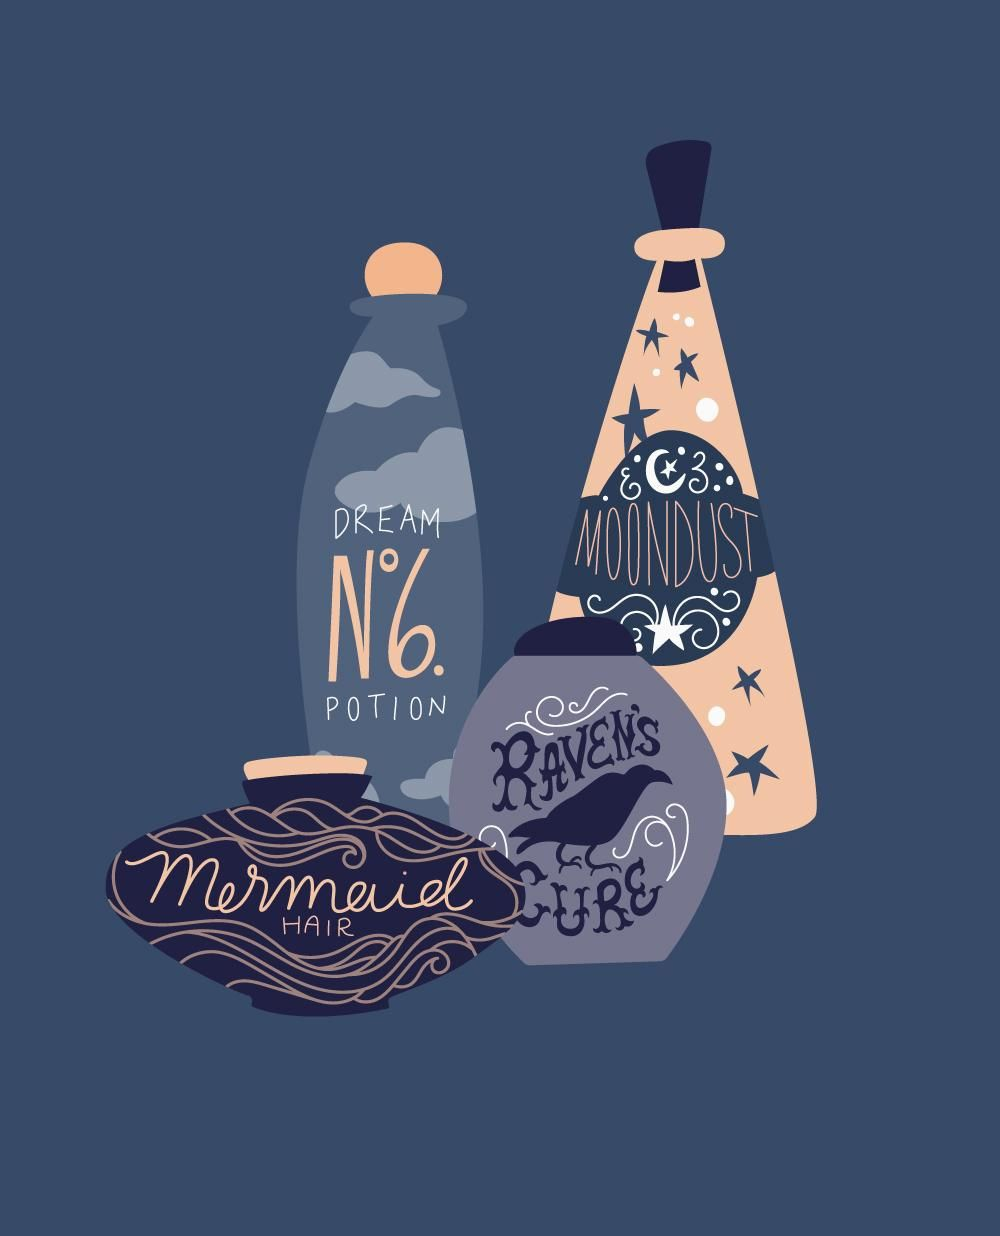 Moon Dust, Mermaid Hair, Dream Potion No. 6, and Raven's Cure - image 3 - student project